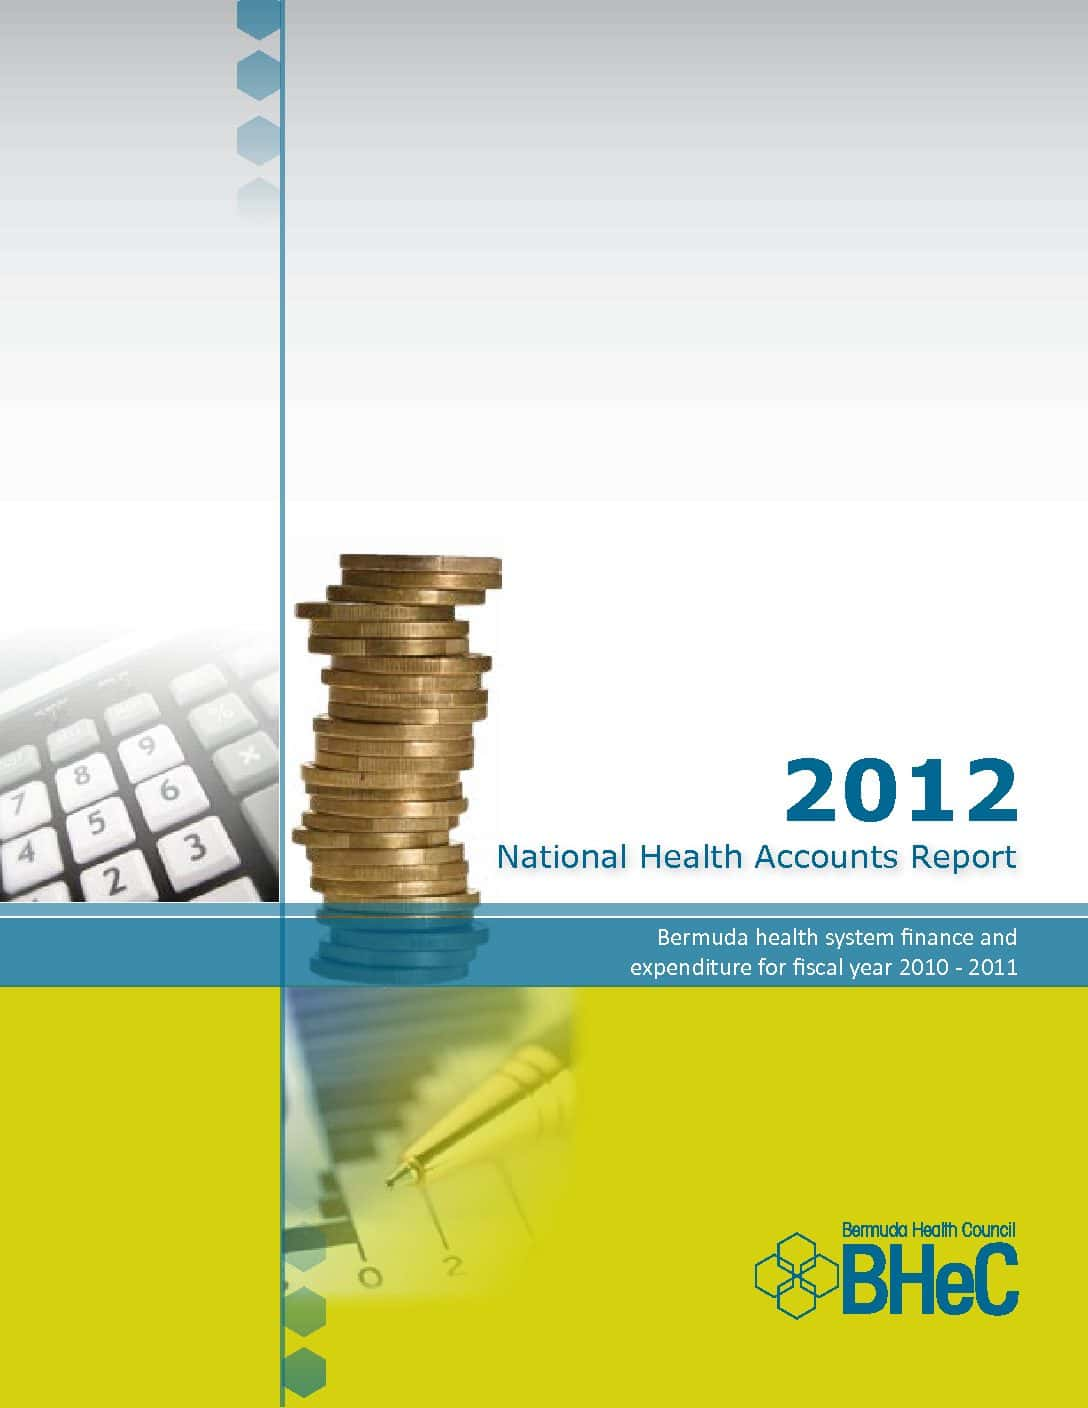 2012 National Health Accounts